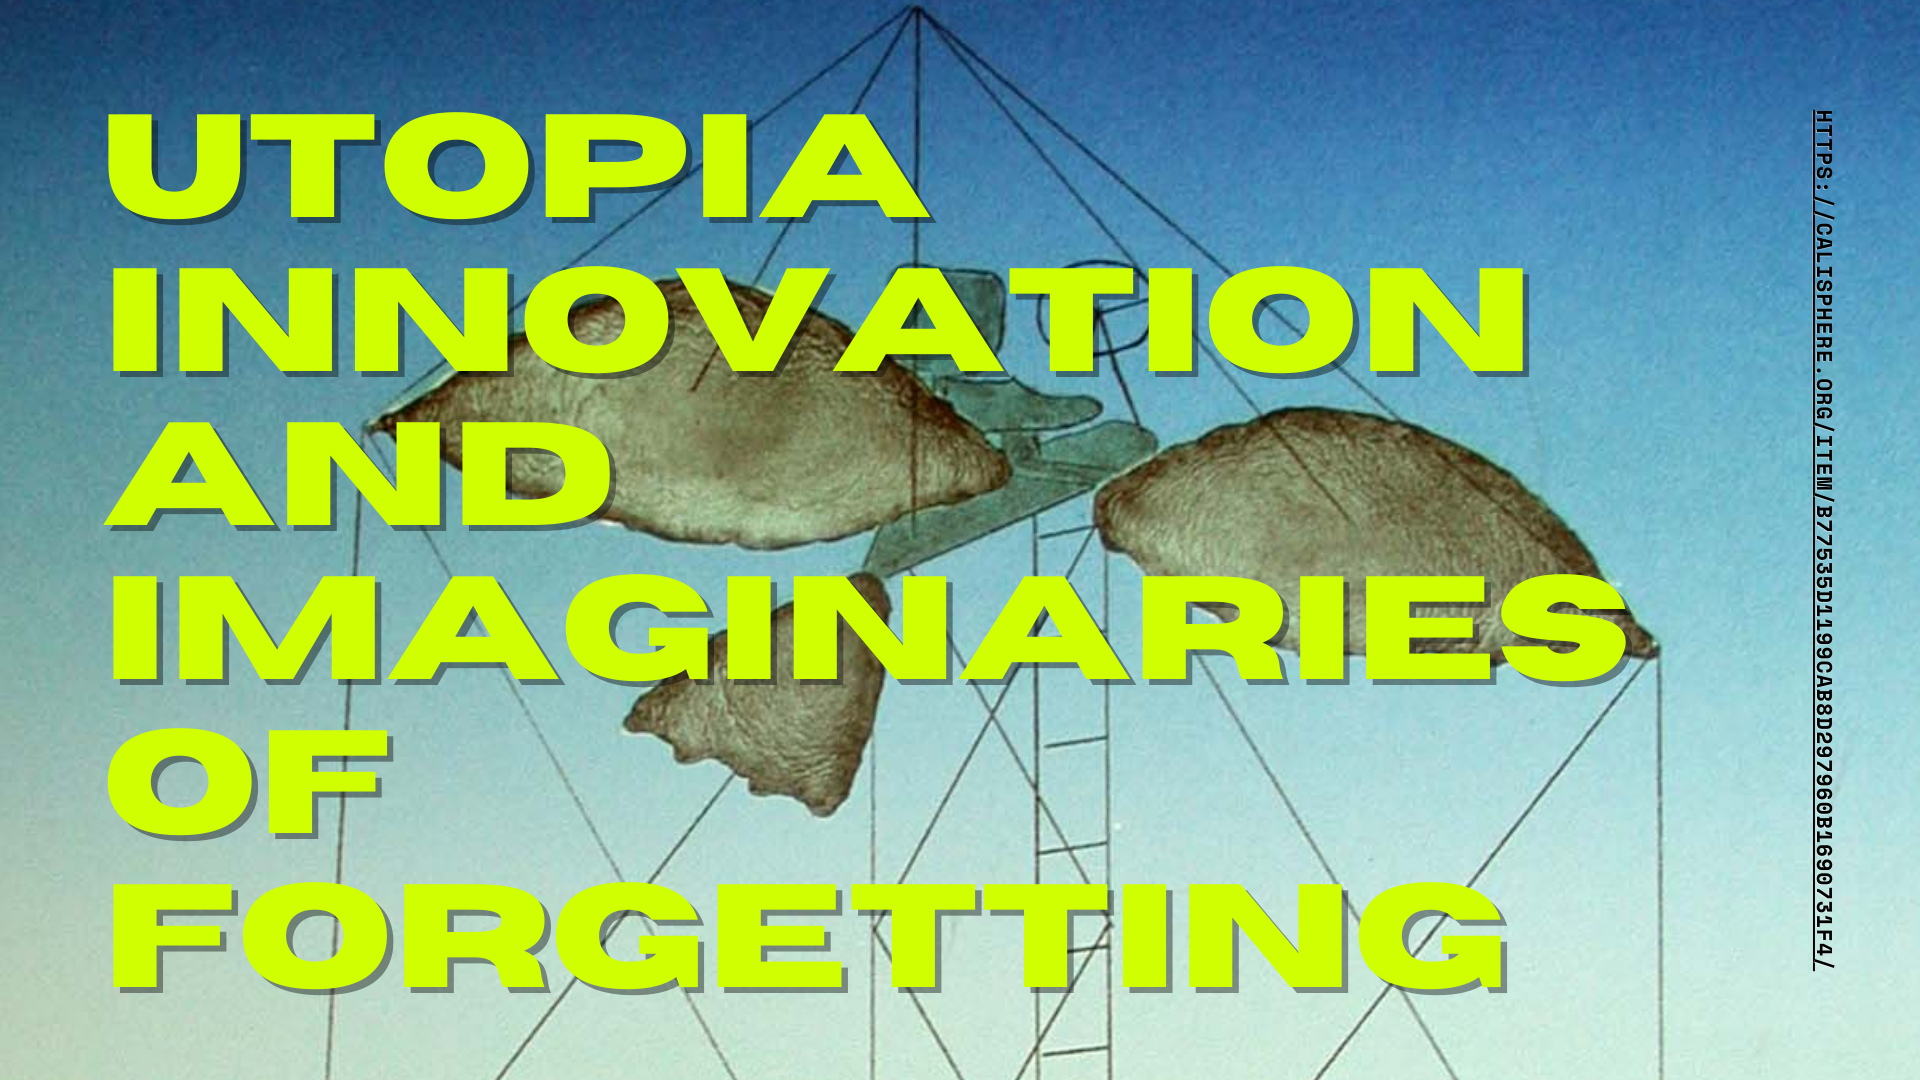 slide titled: 'Utopia, Innovation, and Imaginaries of Forgetting; depicts an imaginary flying vehicle with a seat and steering wheel with a large frame on top of a blue gradient background